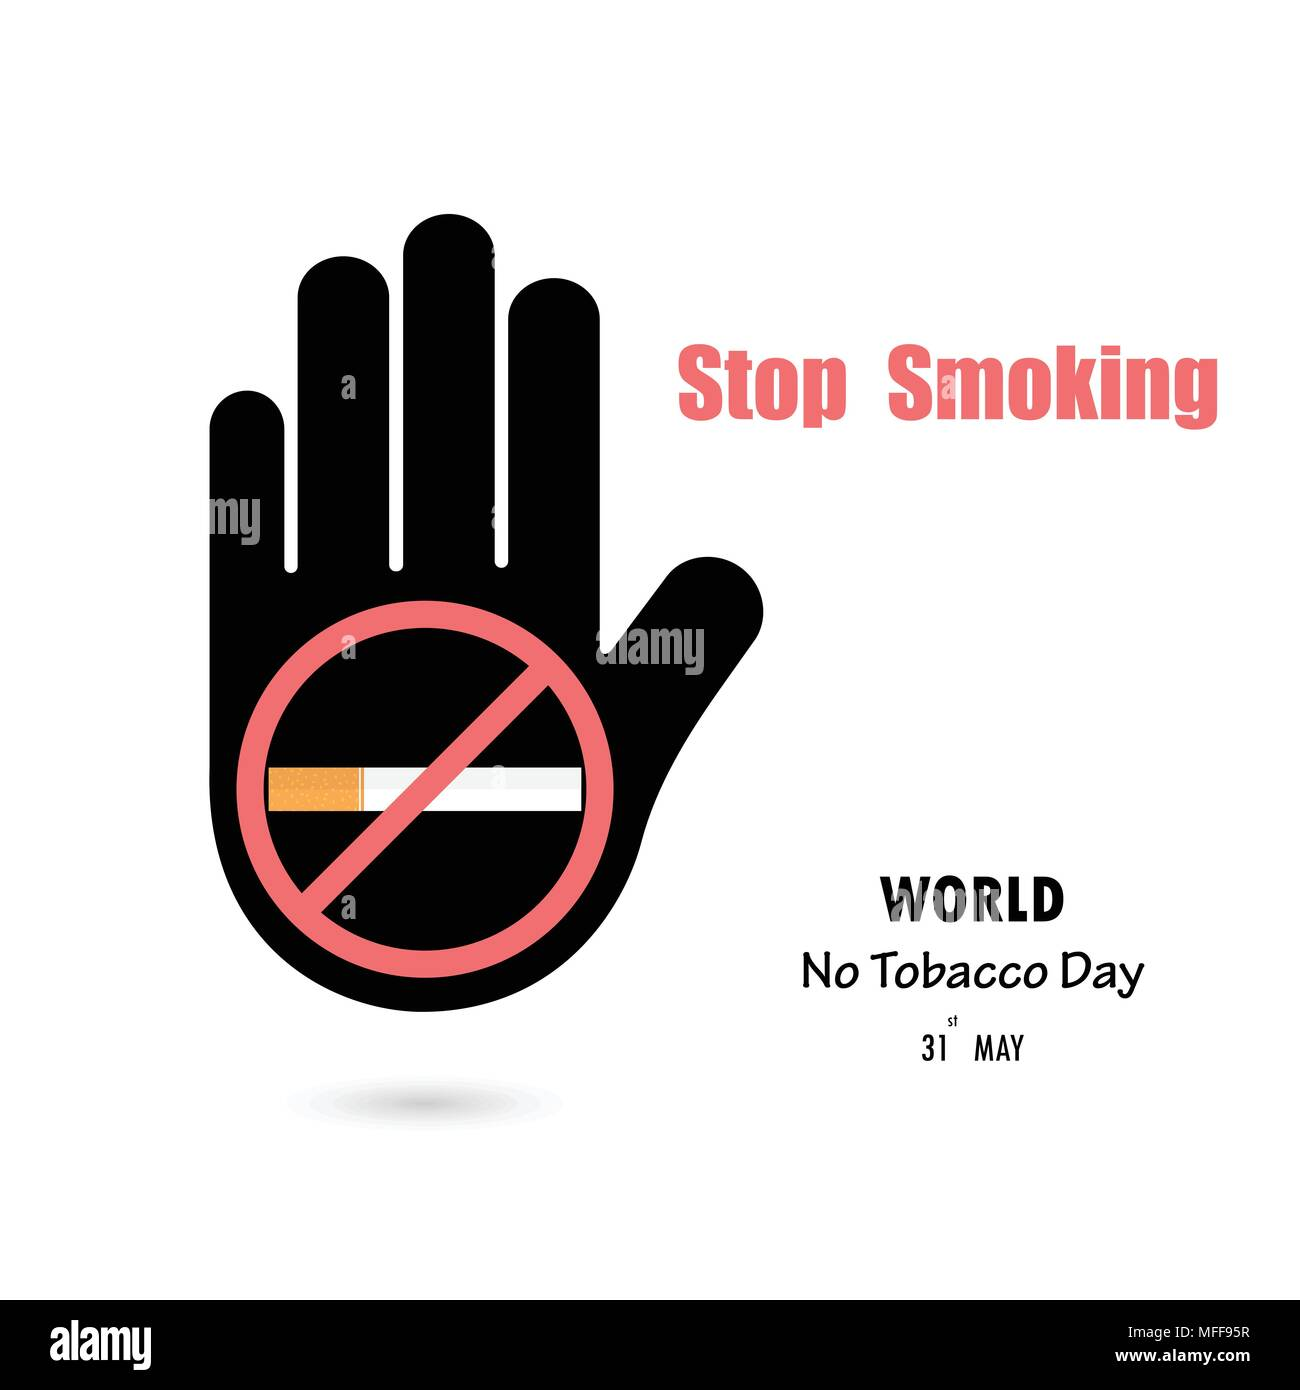 Human Hands And Quit Tobacco Vector Logo Design Template May 31st World No Tobacco Day No Smoking Day Awareness Idea Campaign For Greeting Card Poster Stock Vector Image Art Alamy